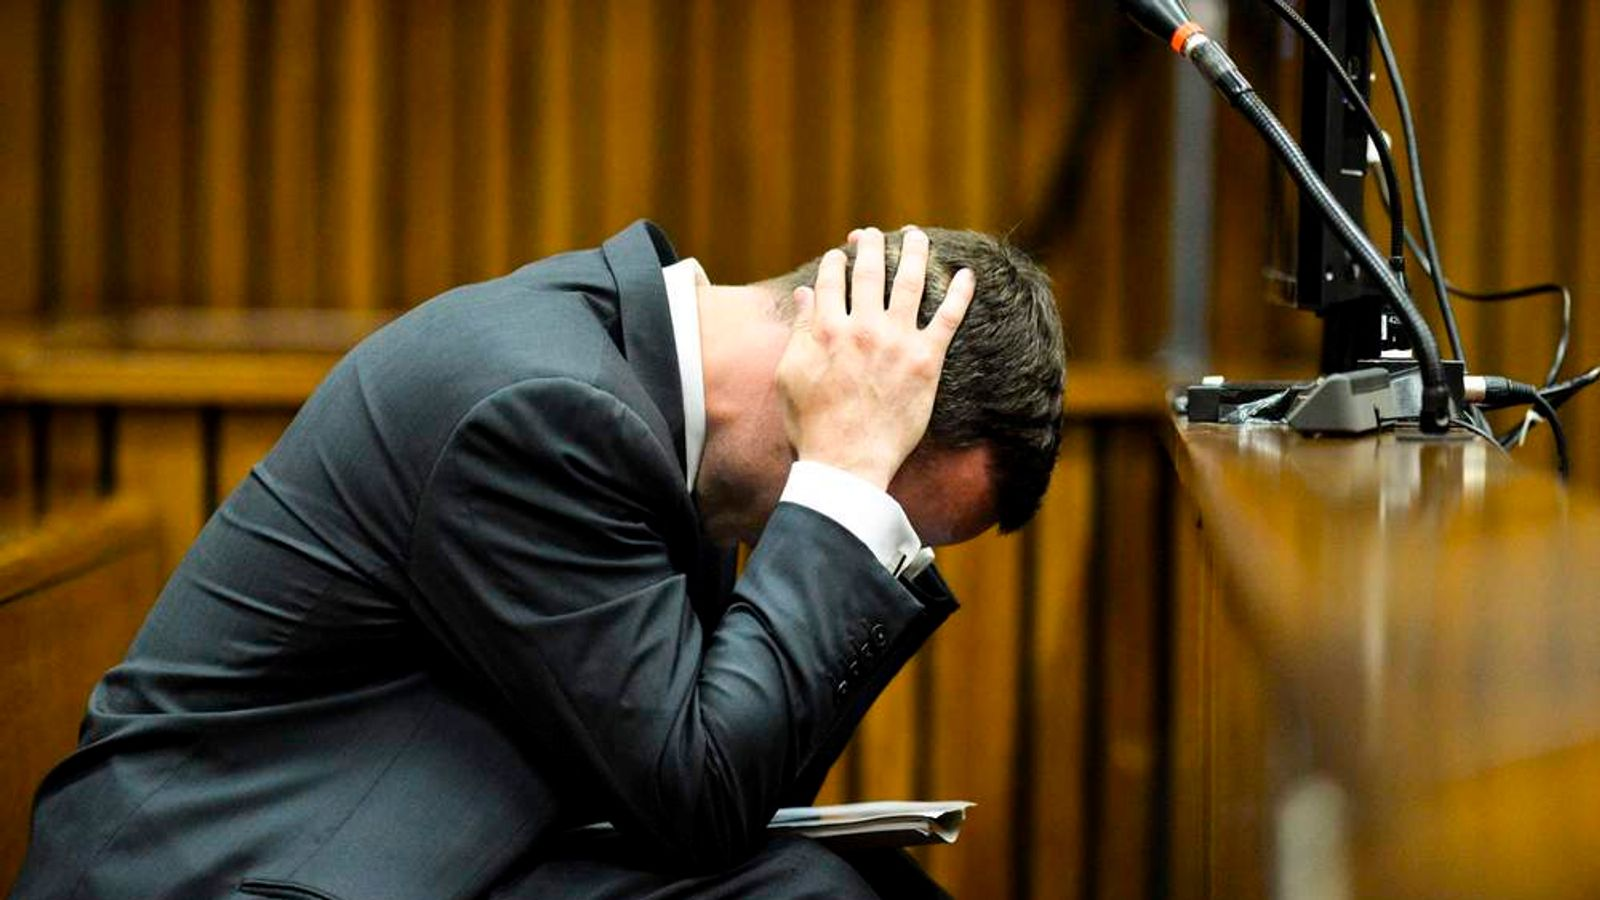 Oscar Pistorius Is Tried For The Murder Of His Girlfriend Reeva Steenkamp